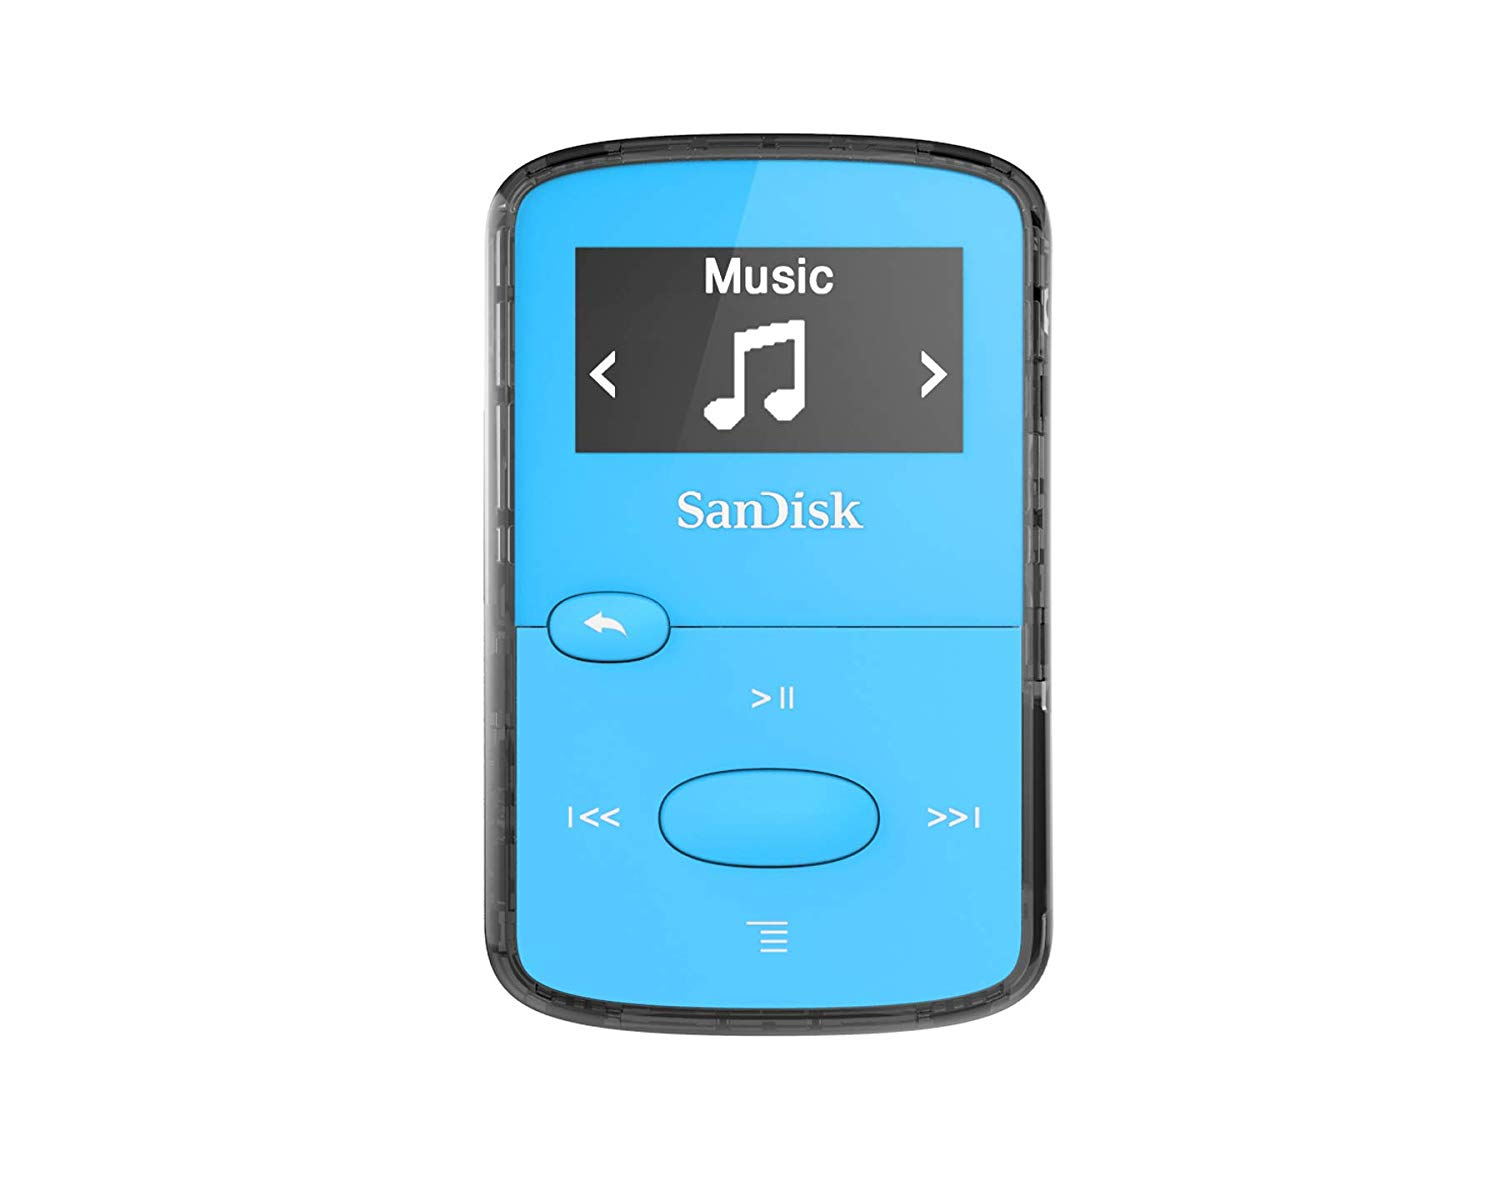 Sandisk 8GB Clip Jam MP3 Player (Best Budget)